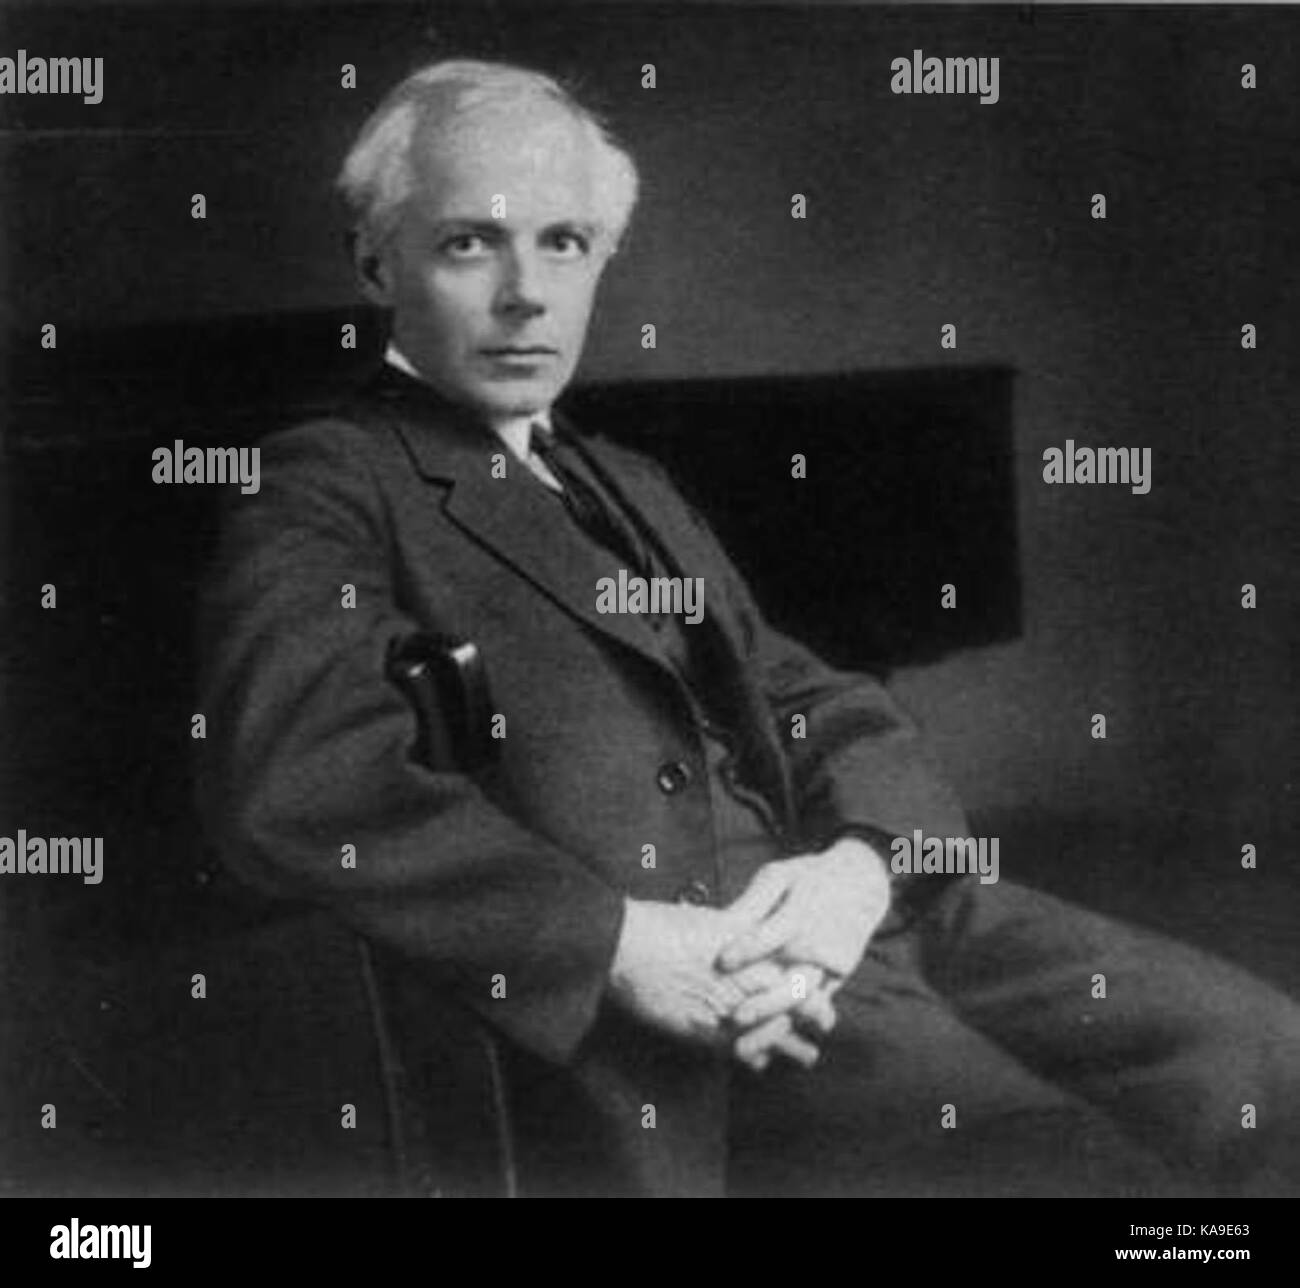 Béla Bartók, an influential composer from the early 20th century; one of the founders of ethnomusicology - Stock Image